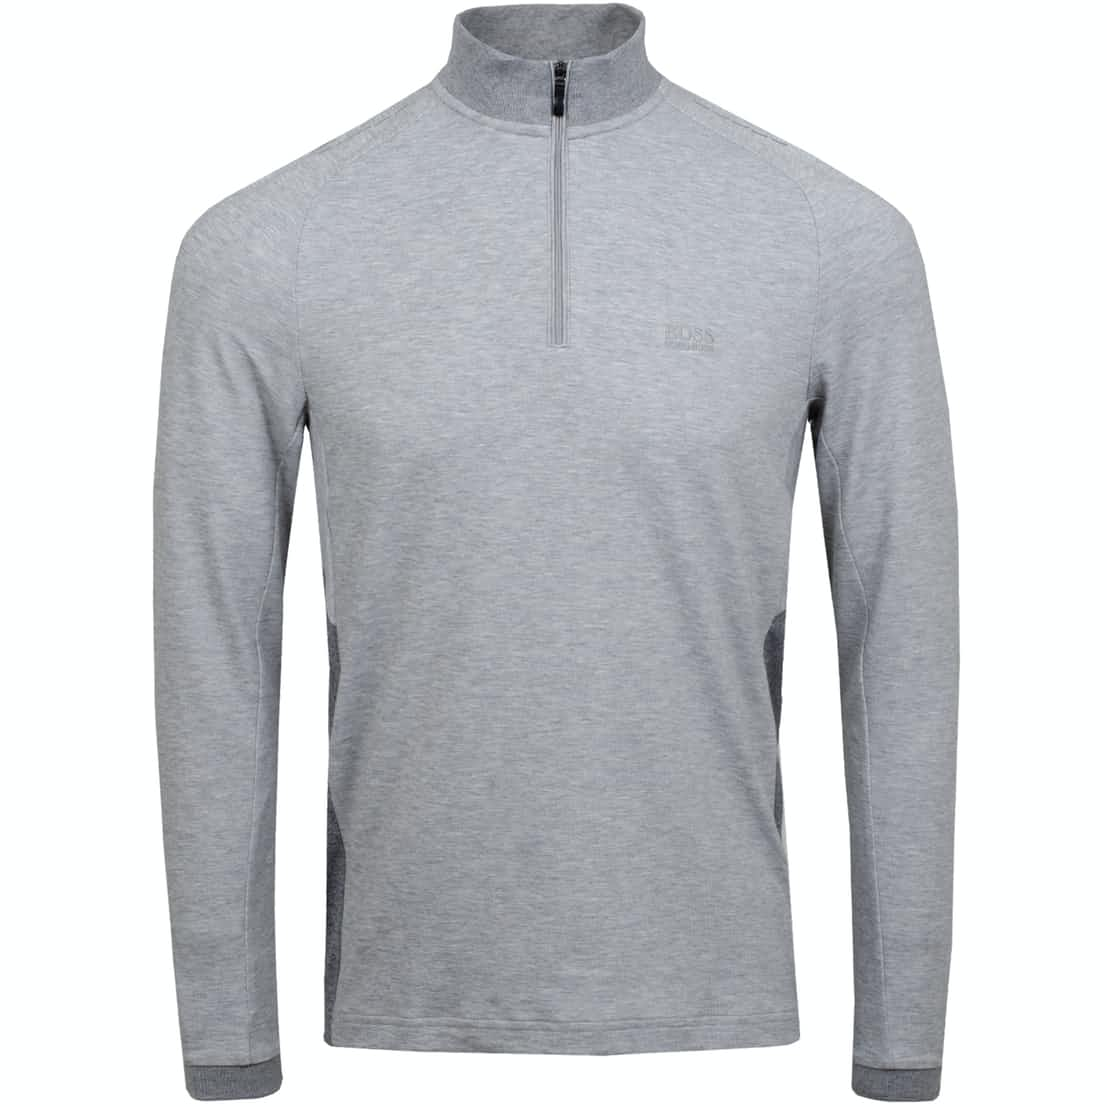 Piraq Grey Melange - AW19